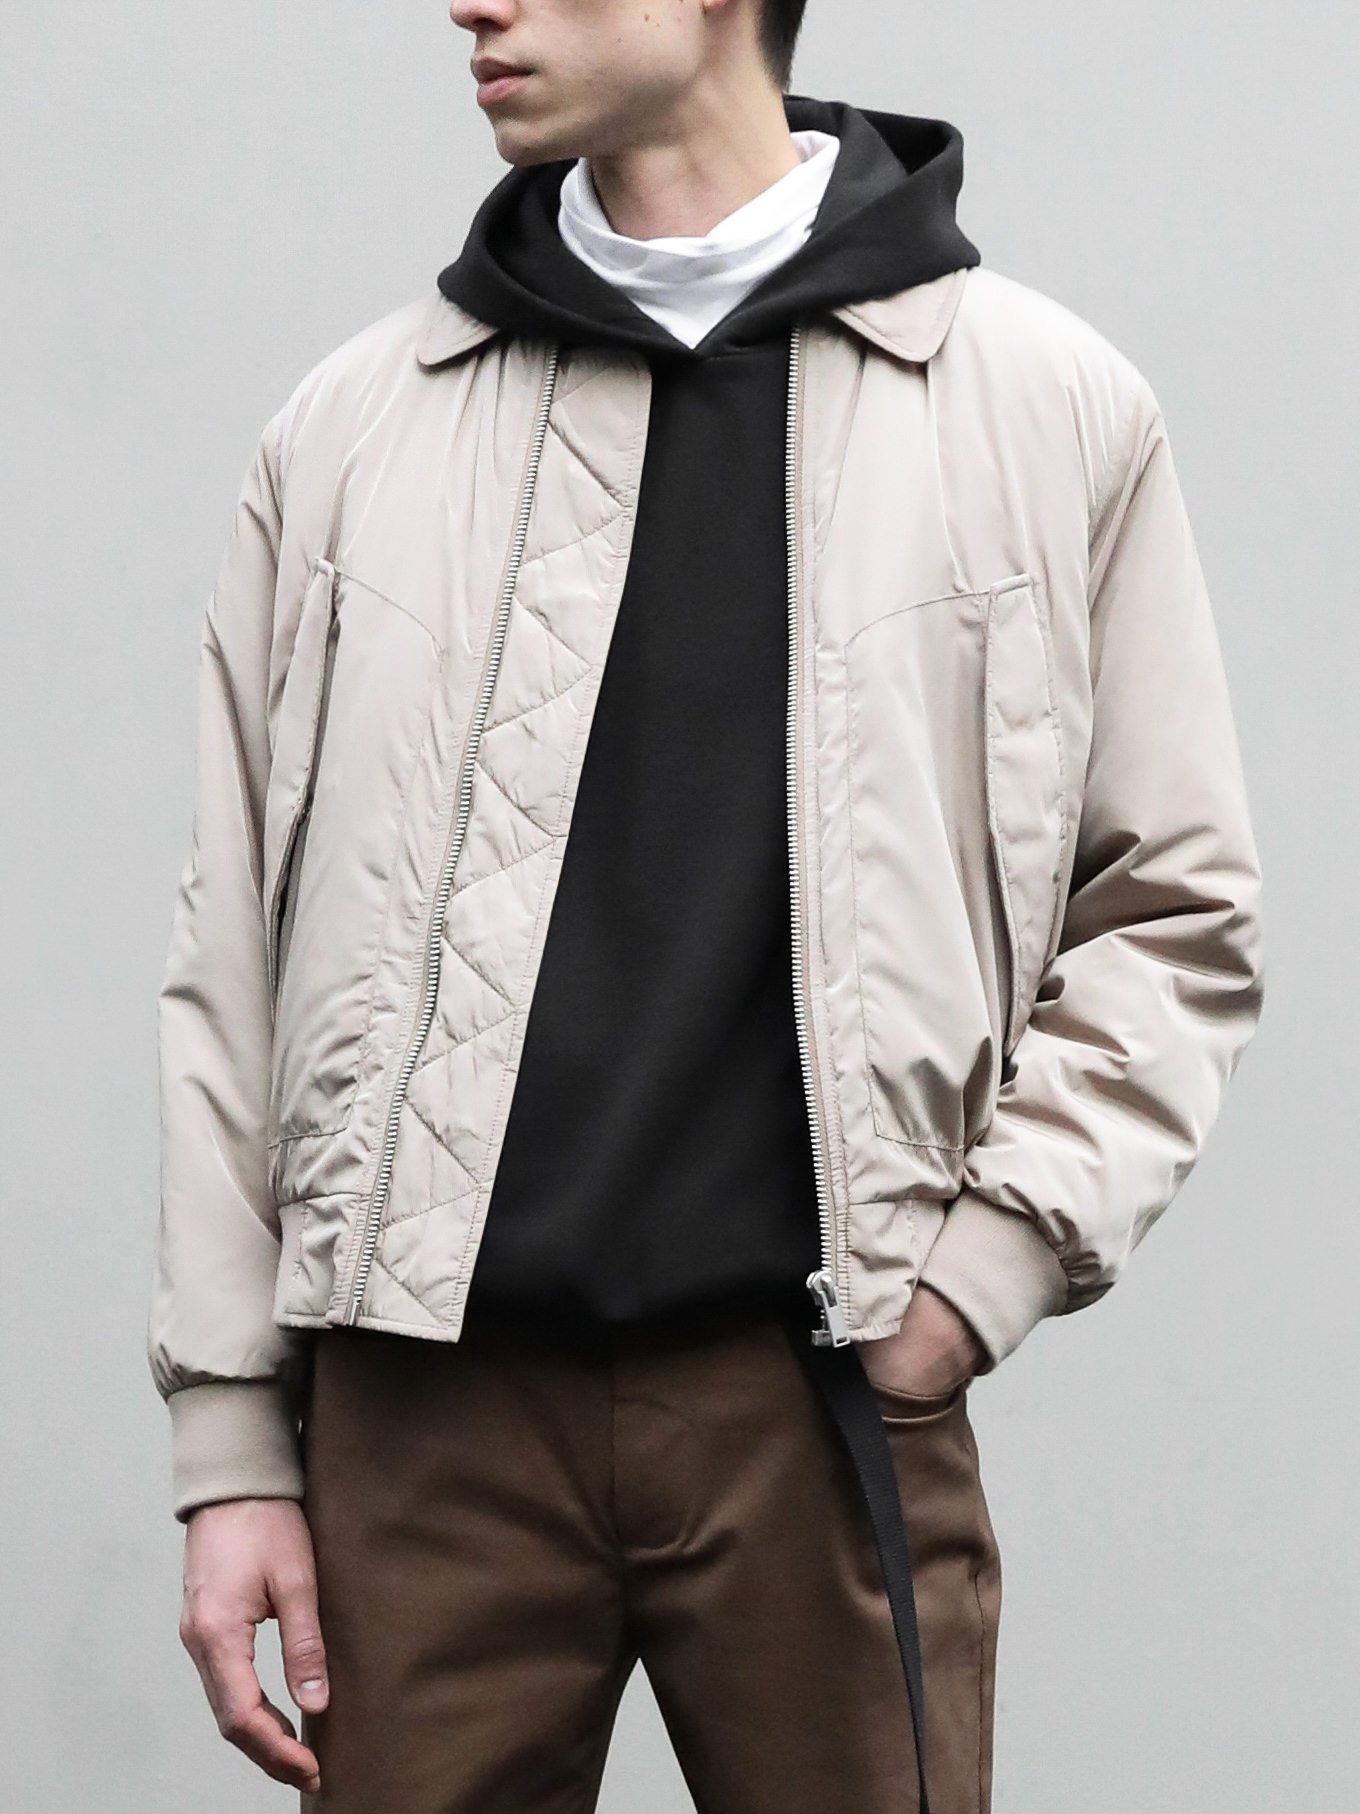 Mens outerwear jacket casual clothing